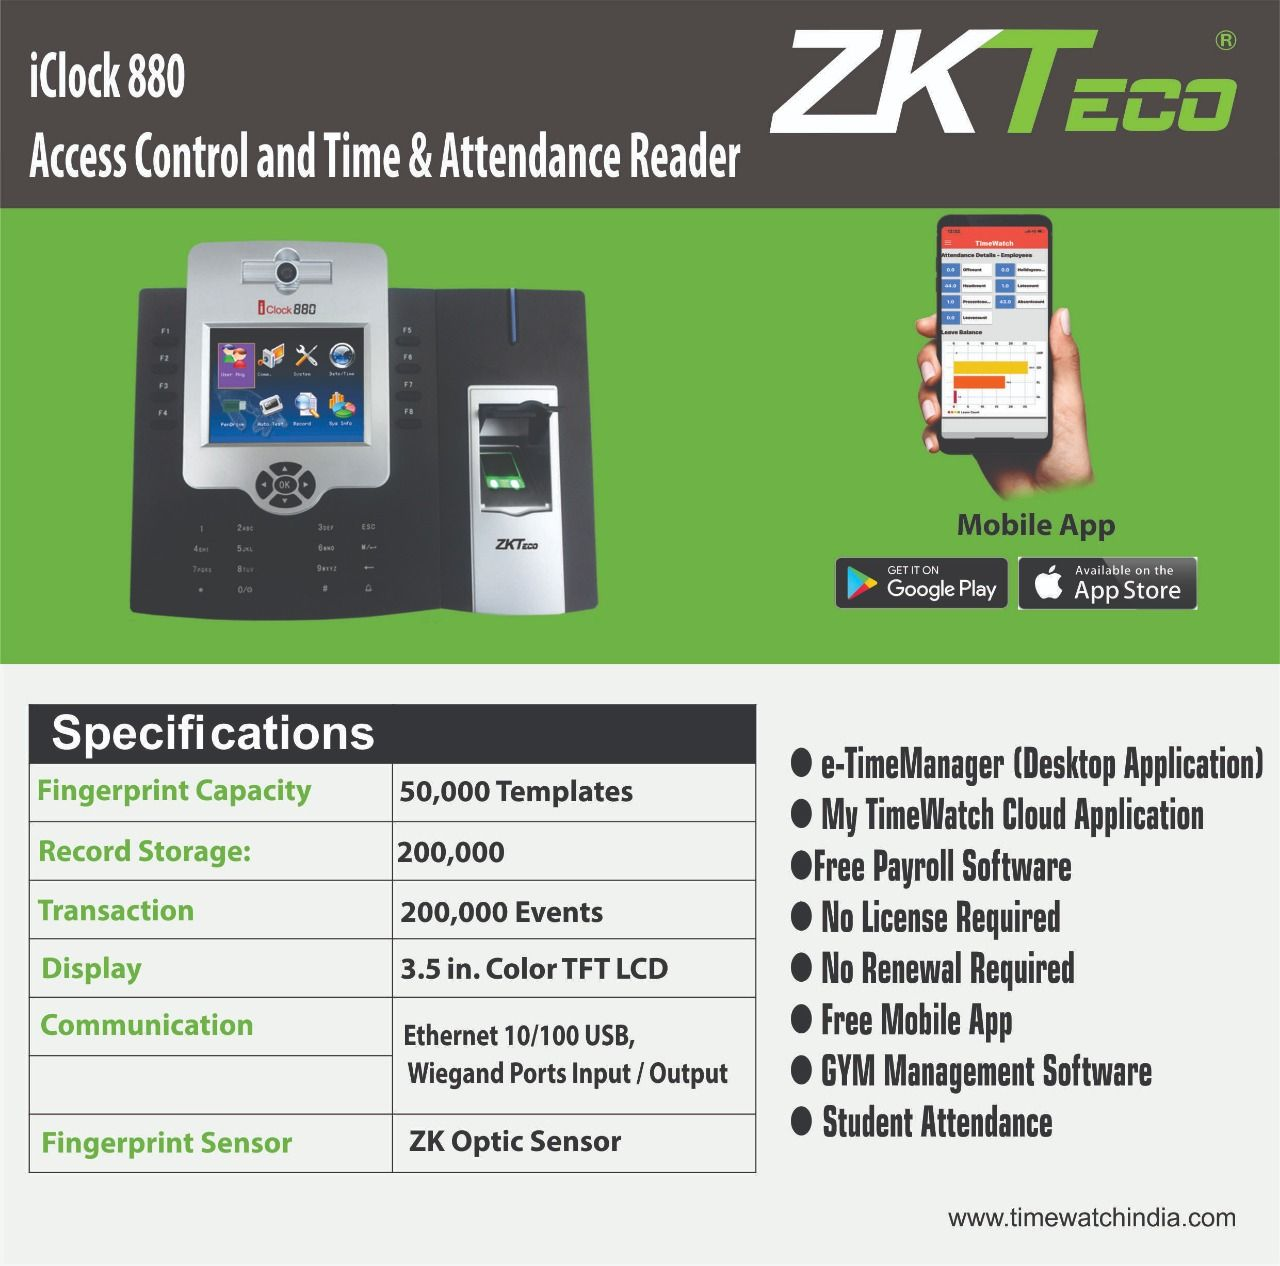 We are the certify partner of ZKTeco to provide you the